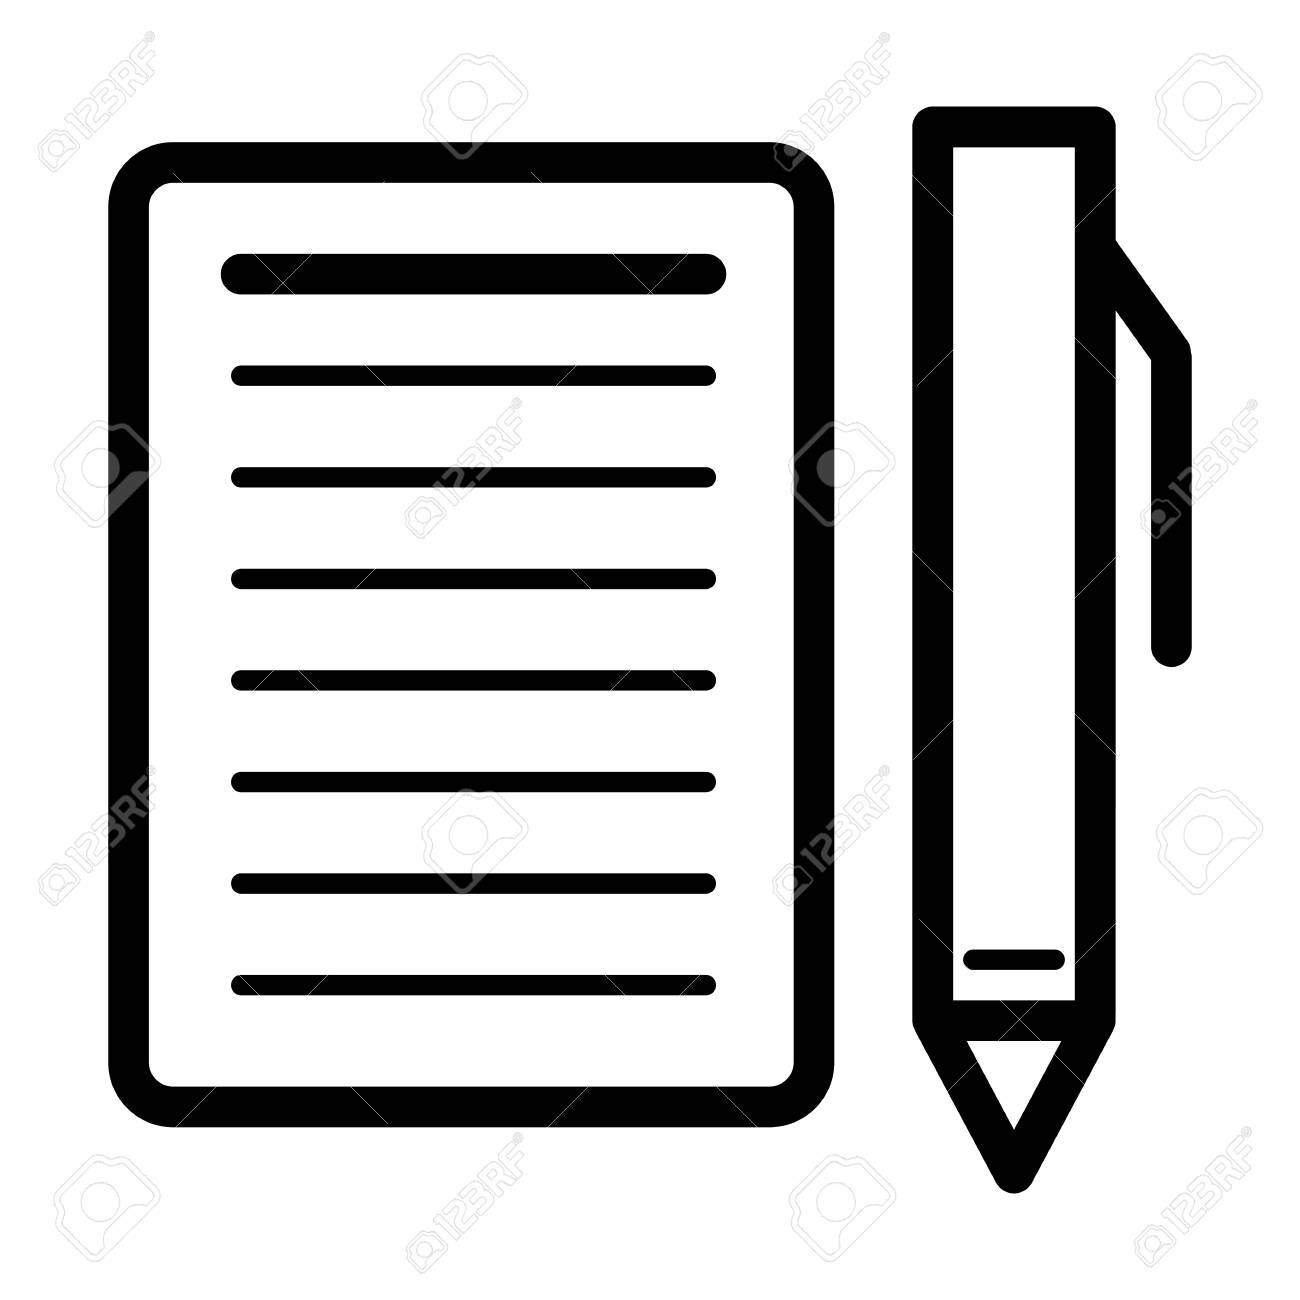 blank paper and a pen vector icon. black and white illustration